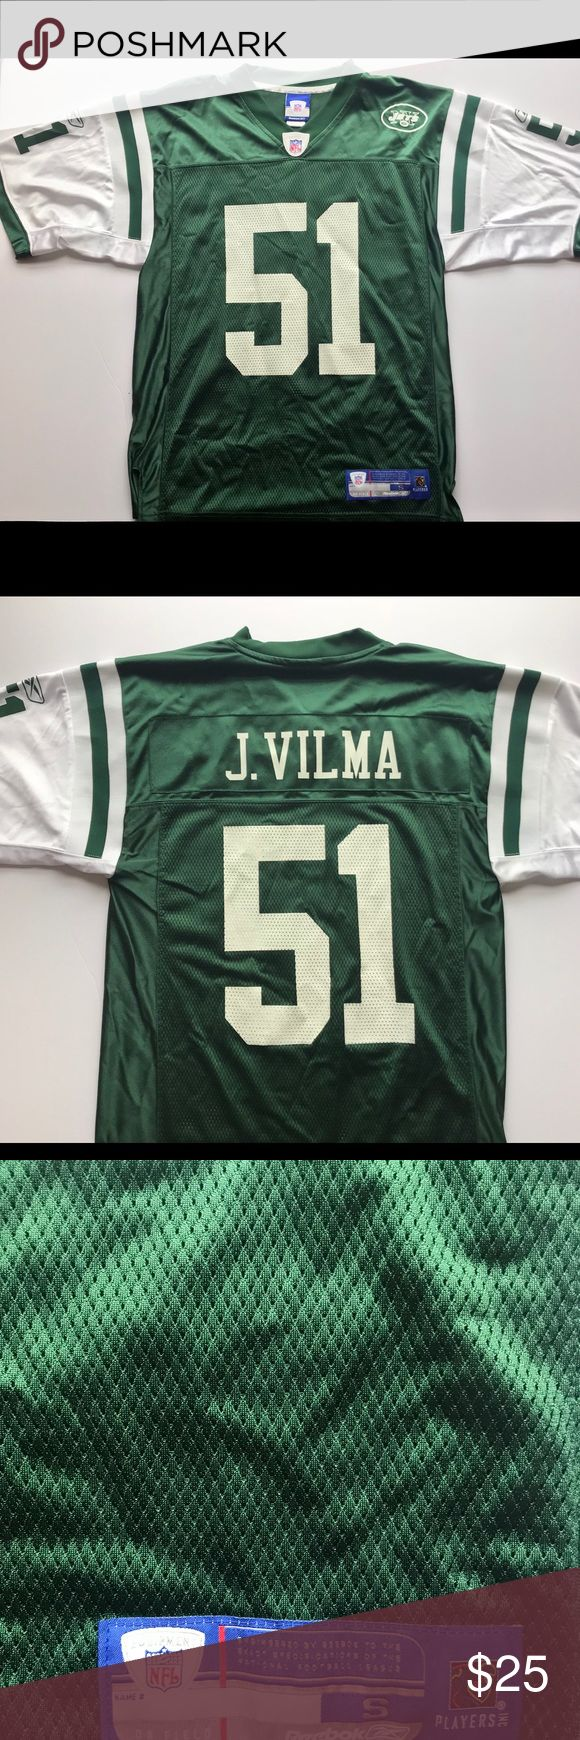 Reebok New York Jets J. Vilma Jersey Item is in great condition and ready for immediate use. Let me know if you have any questions and I'm open to offers! Reebok Shirts Tees - Short Sleeve